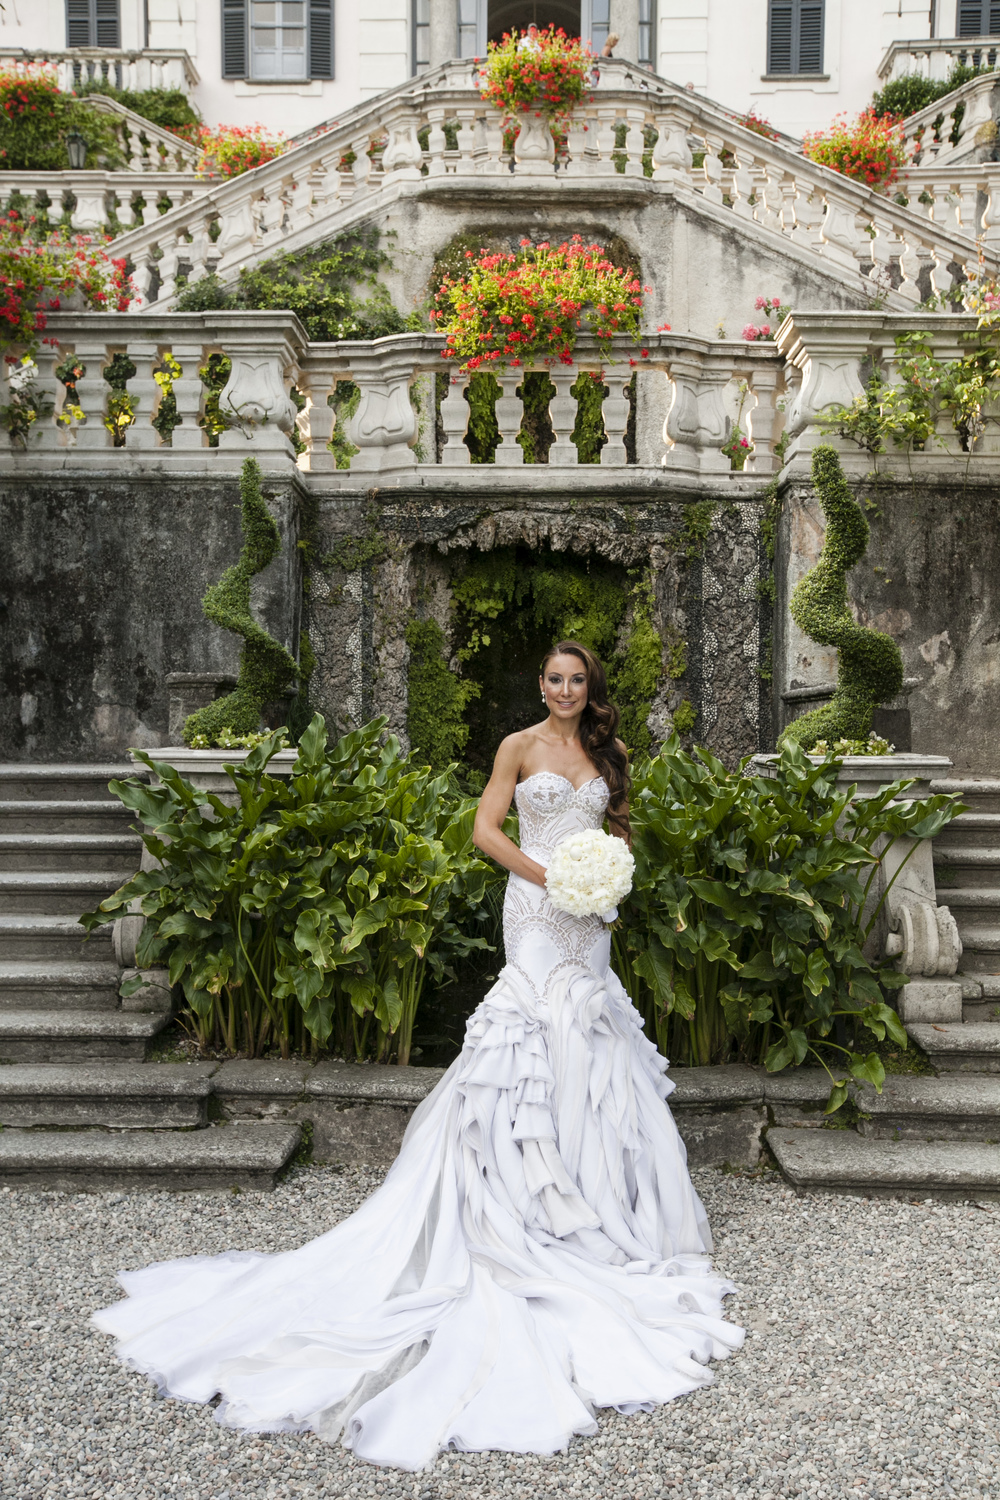 Ceci_New_York_Wedding_Lake_Como_Italy_Luxury_Style_Real_Bride_32.jpg